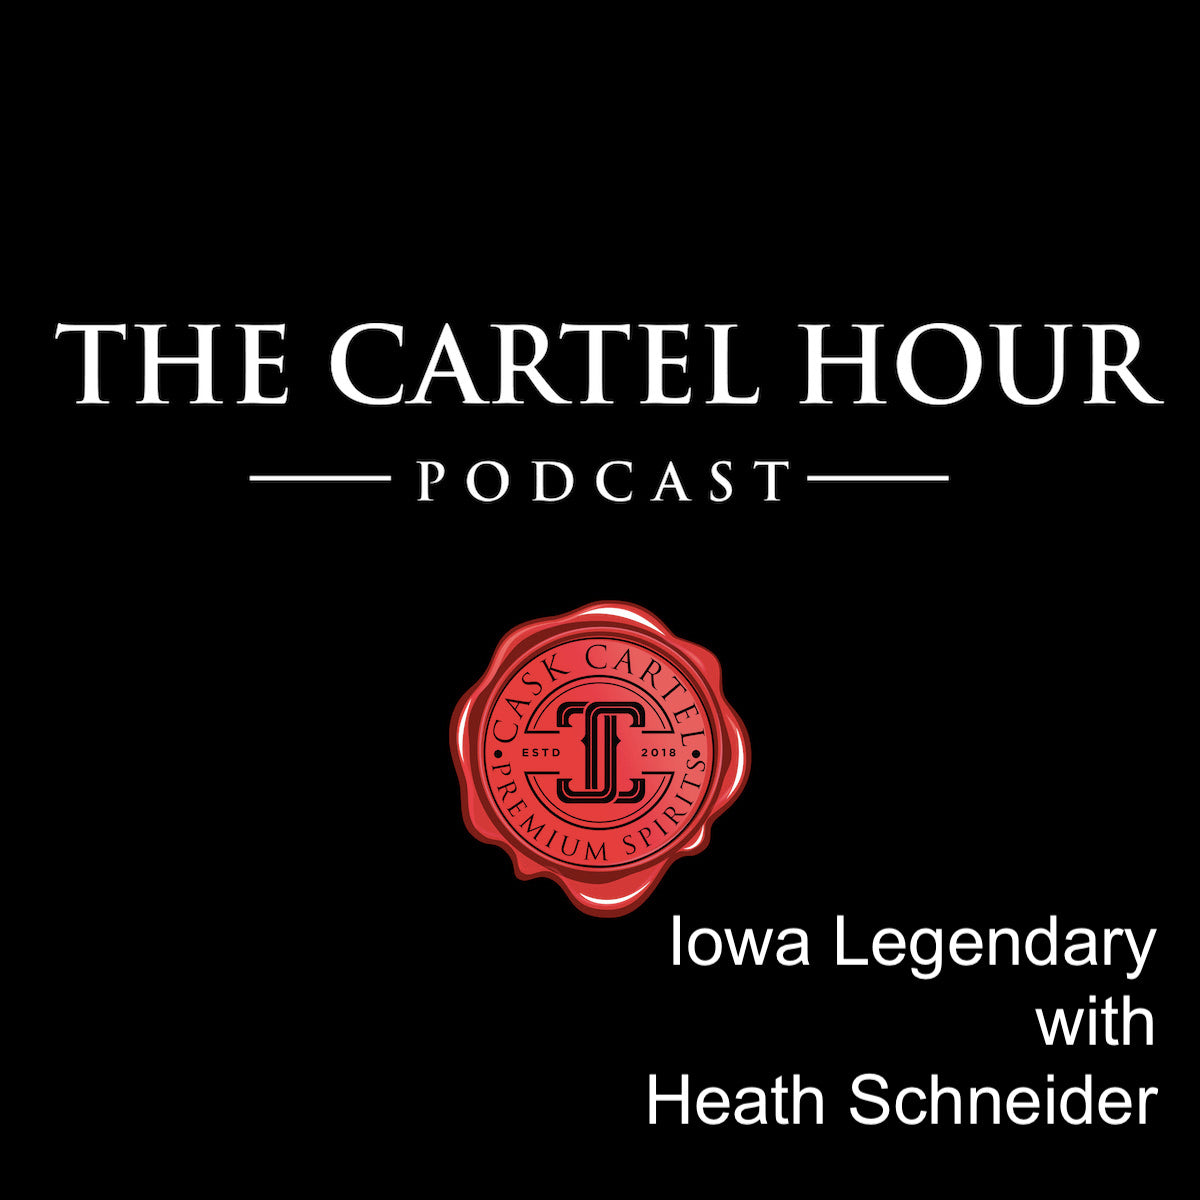 The Cartel Hour: A Piece of American History - Iowa Legendary with Heath Schneider